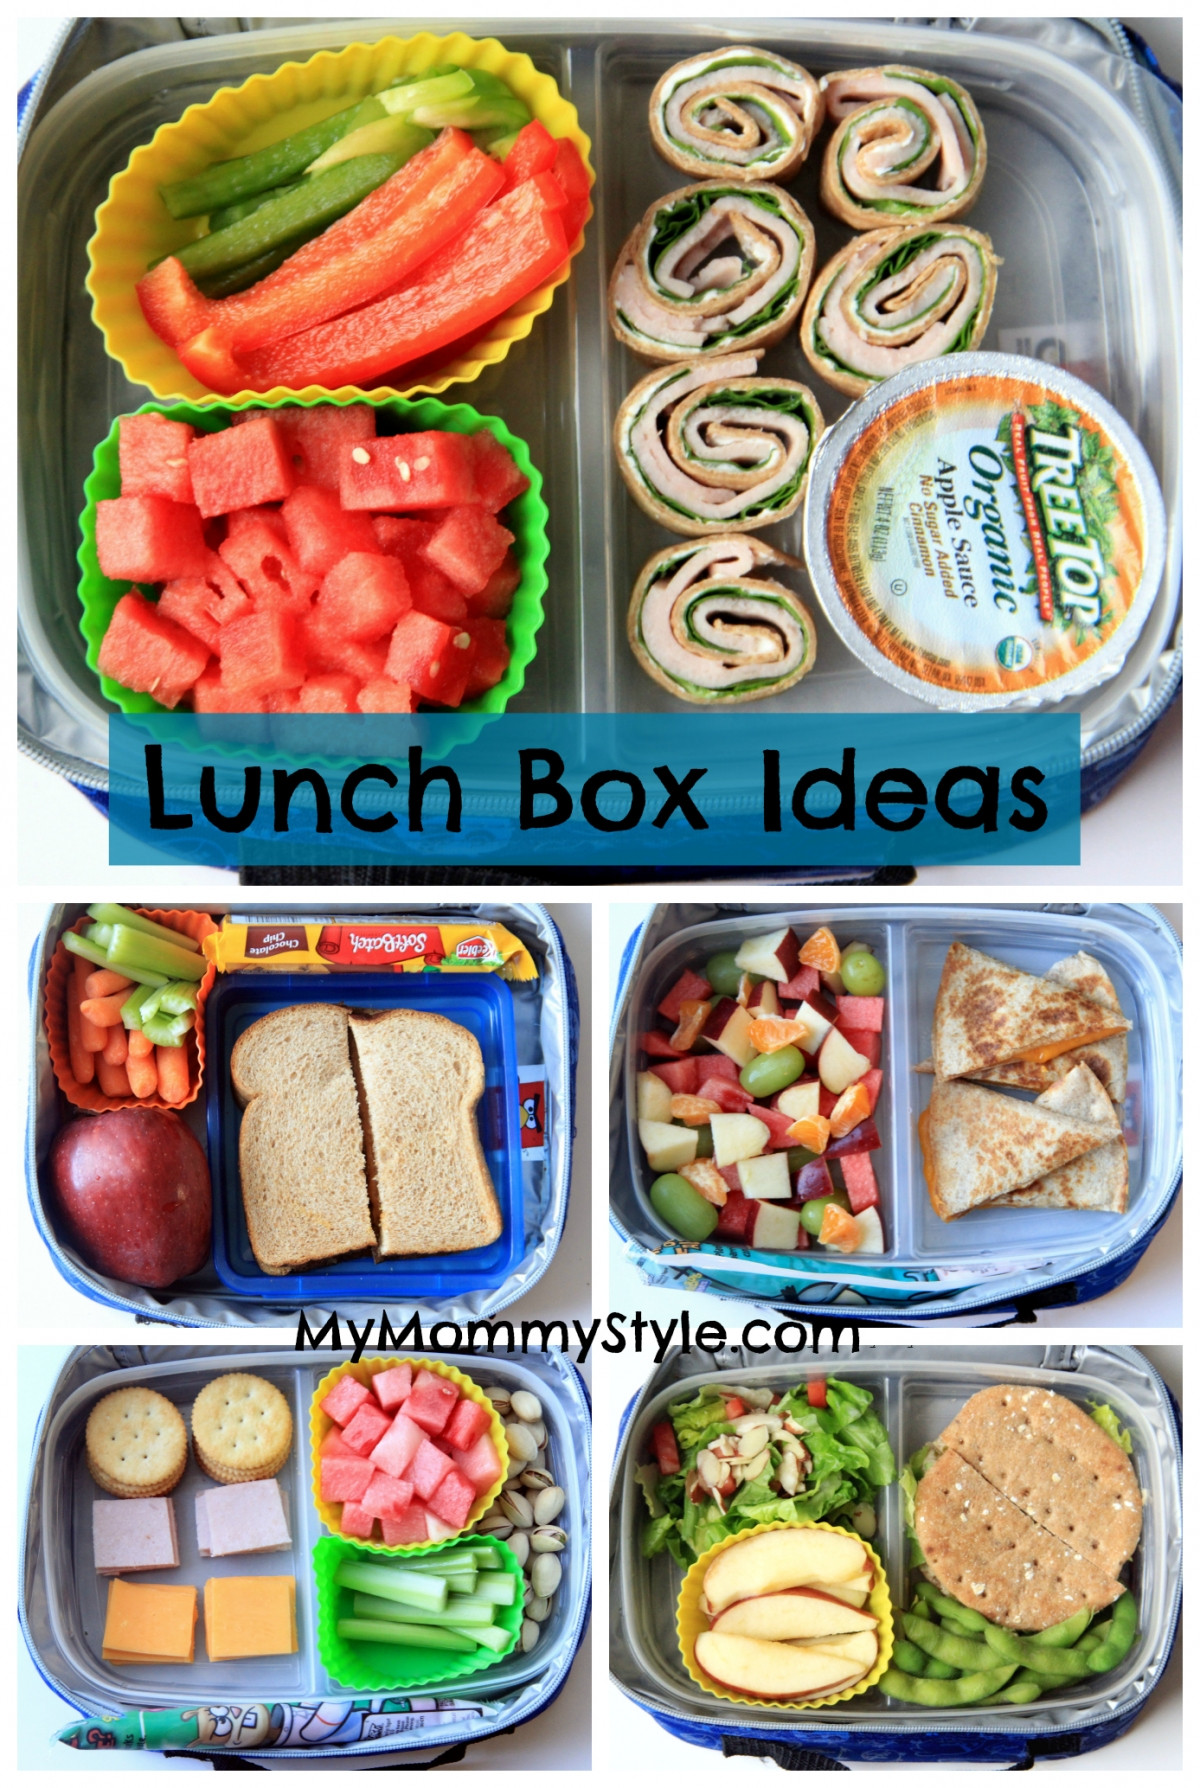 Healthy Kid Lunches  Healthy Lunch Box ideas week 2 My Mommy Style